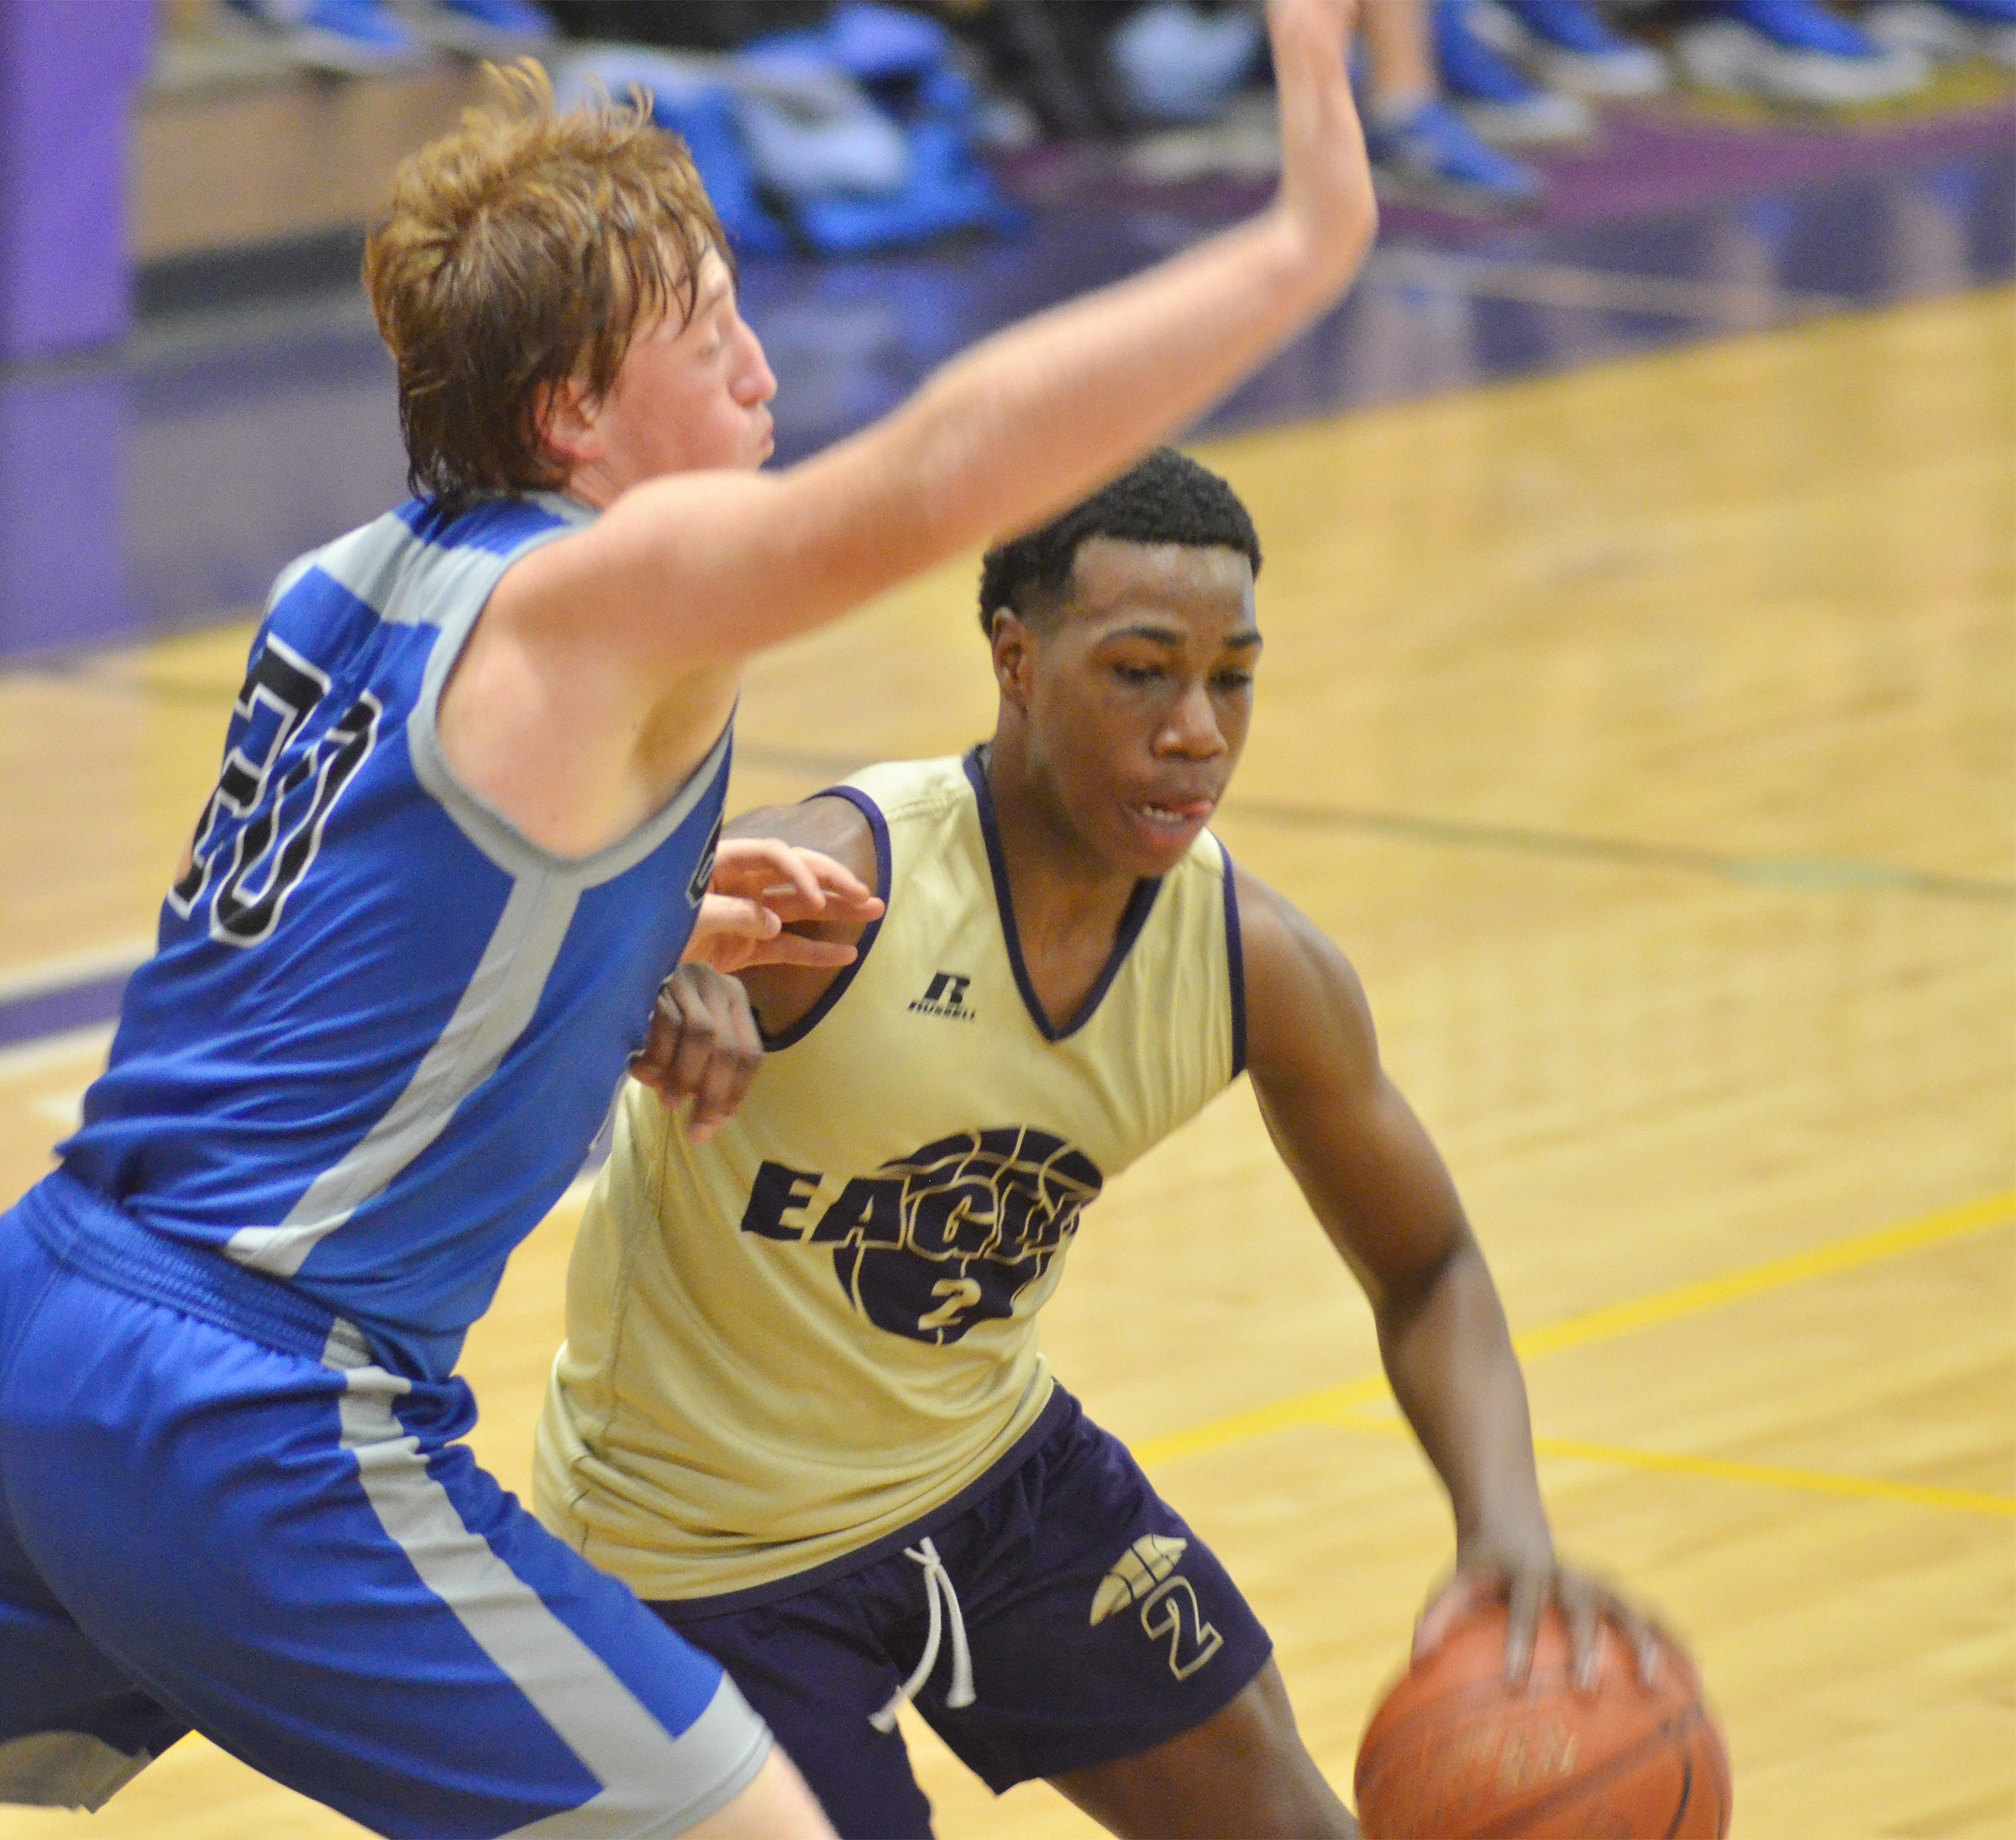 CHS sophomore Malachi Corley dribbles to the basket.